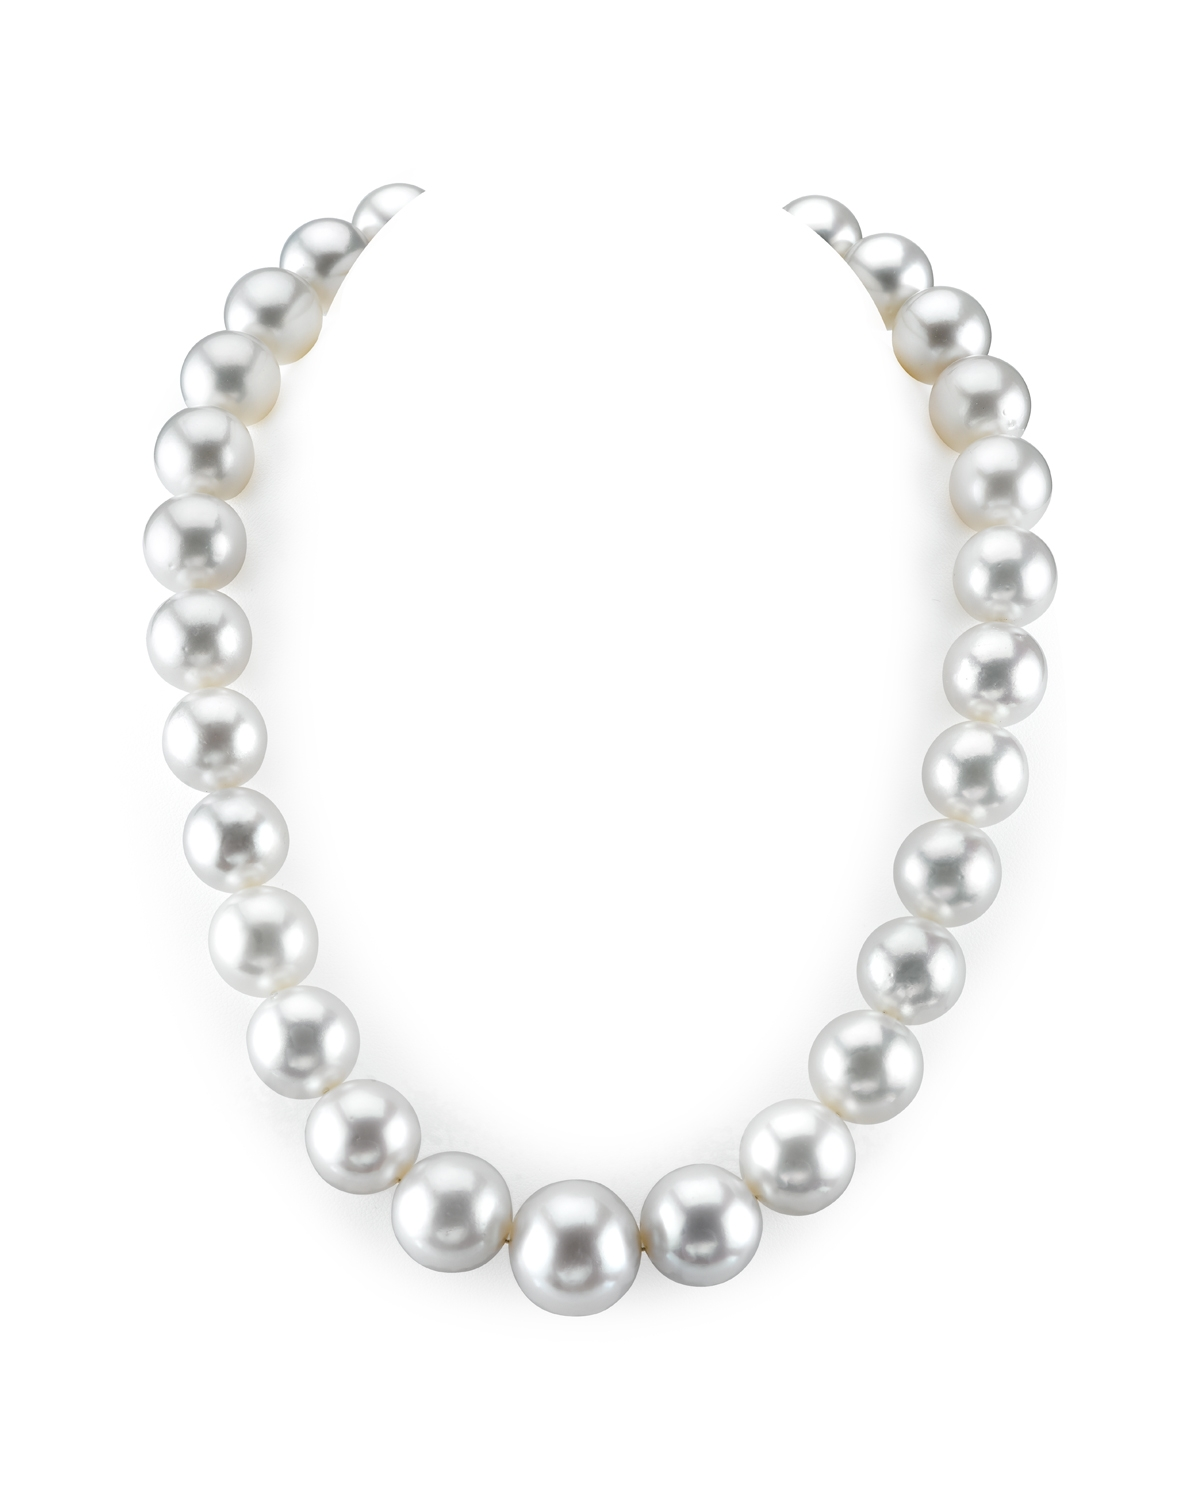 14-18.4mm White South Sea Pearl Necklace